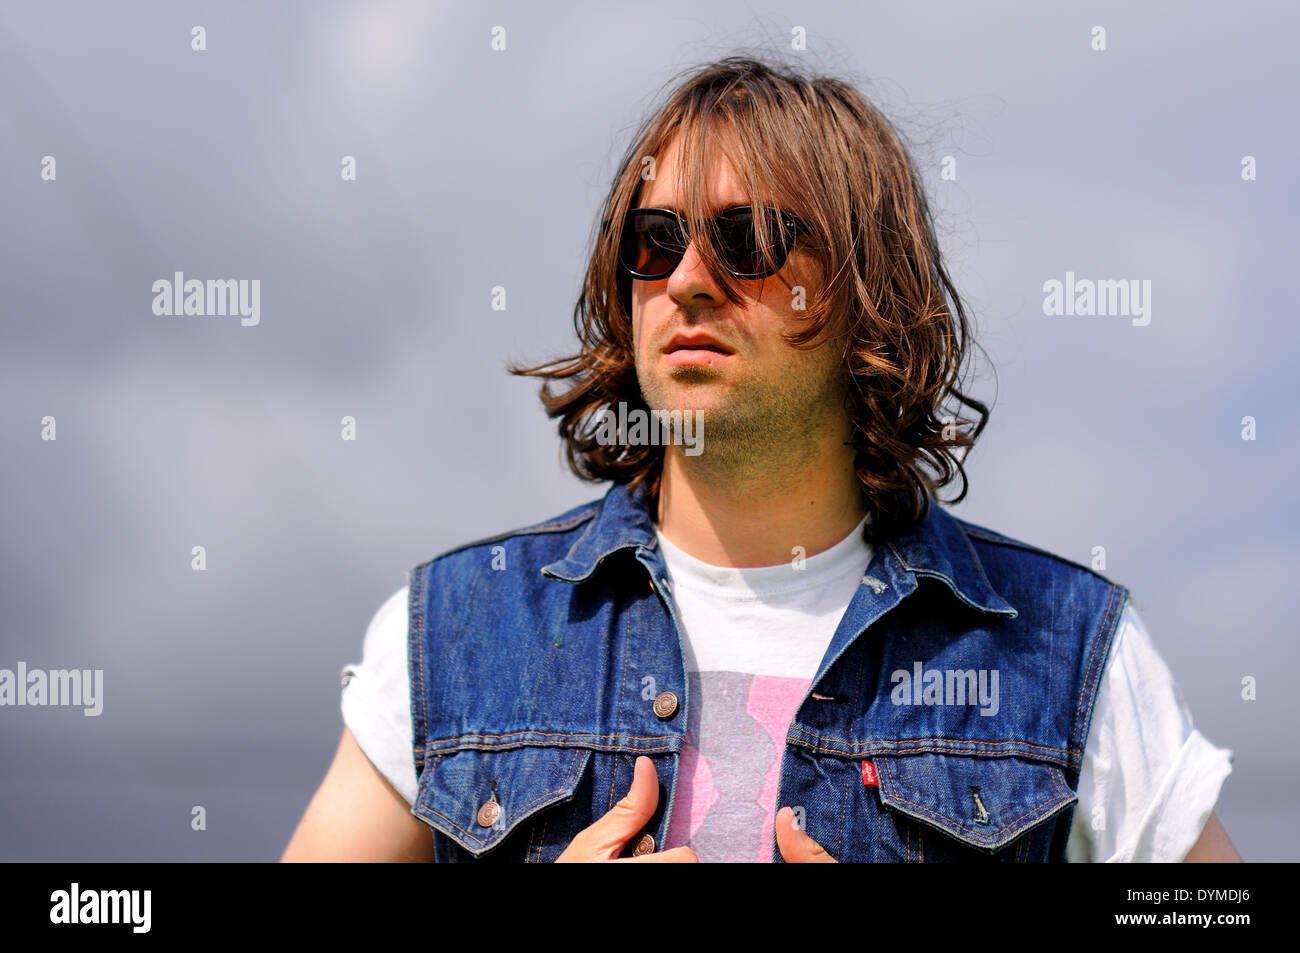 BENICASSIM, SPAIN - JULY 15: Portrait of Justin Young, leader of the English indie rock band The Vaccines, at FIB. - Stock Image